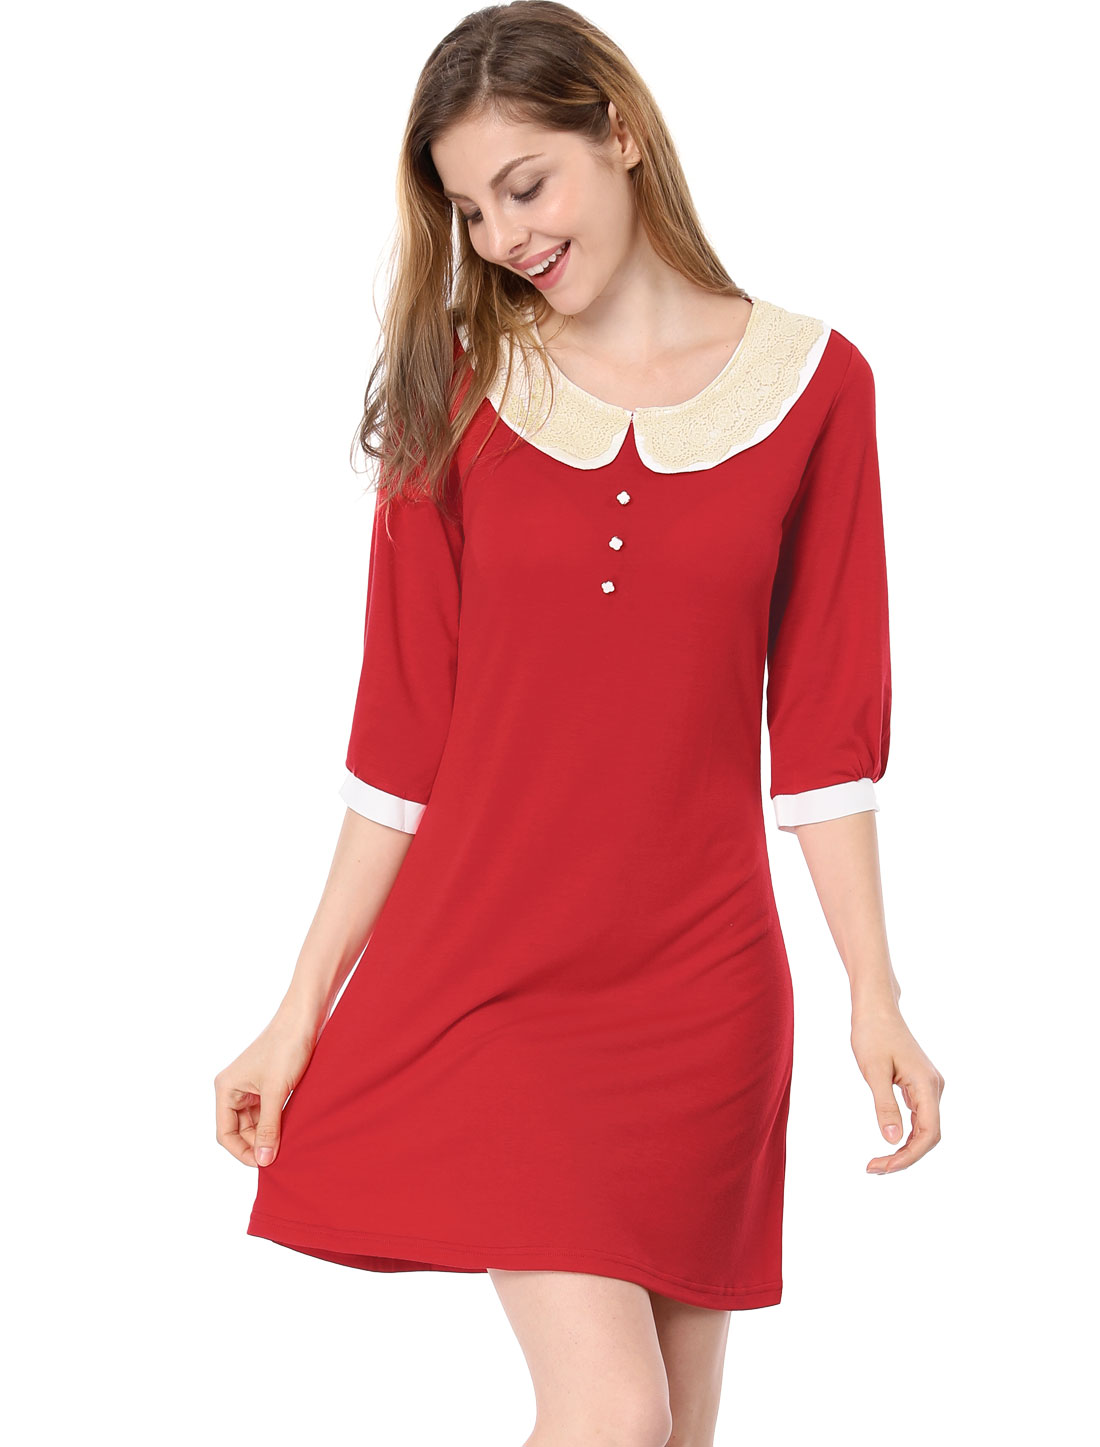 White Collar Red 3/4 Sleeves Stretchy Above Knee Dress XS for Lady